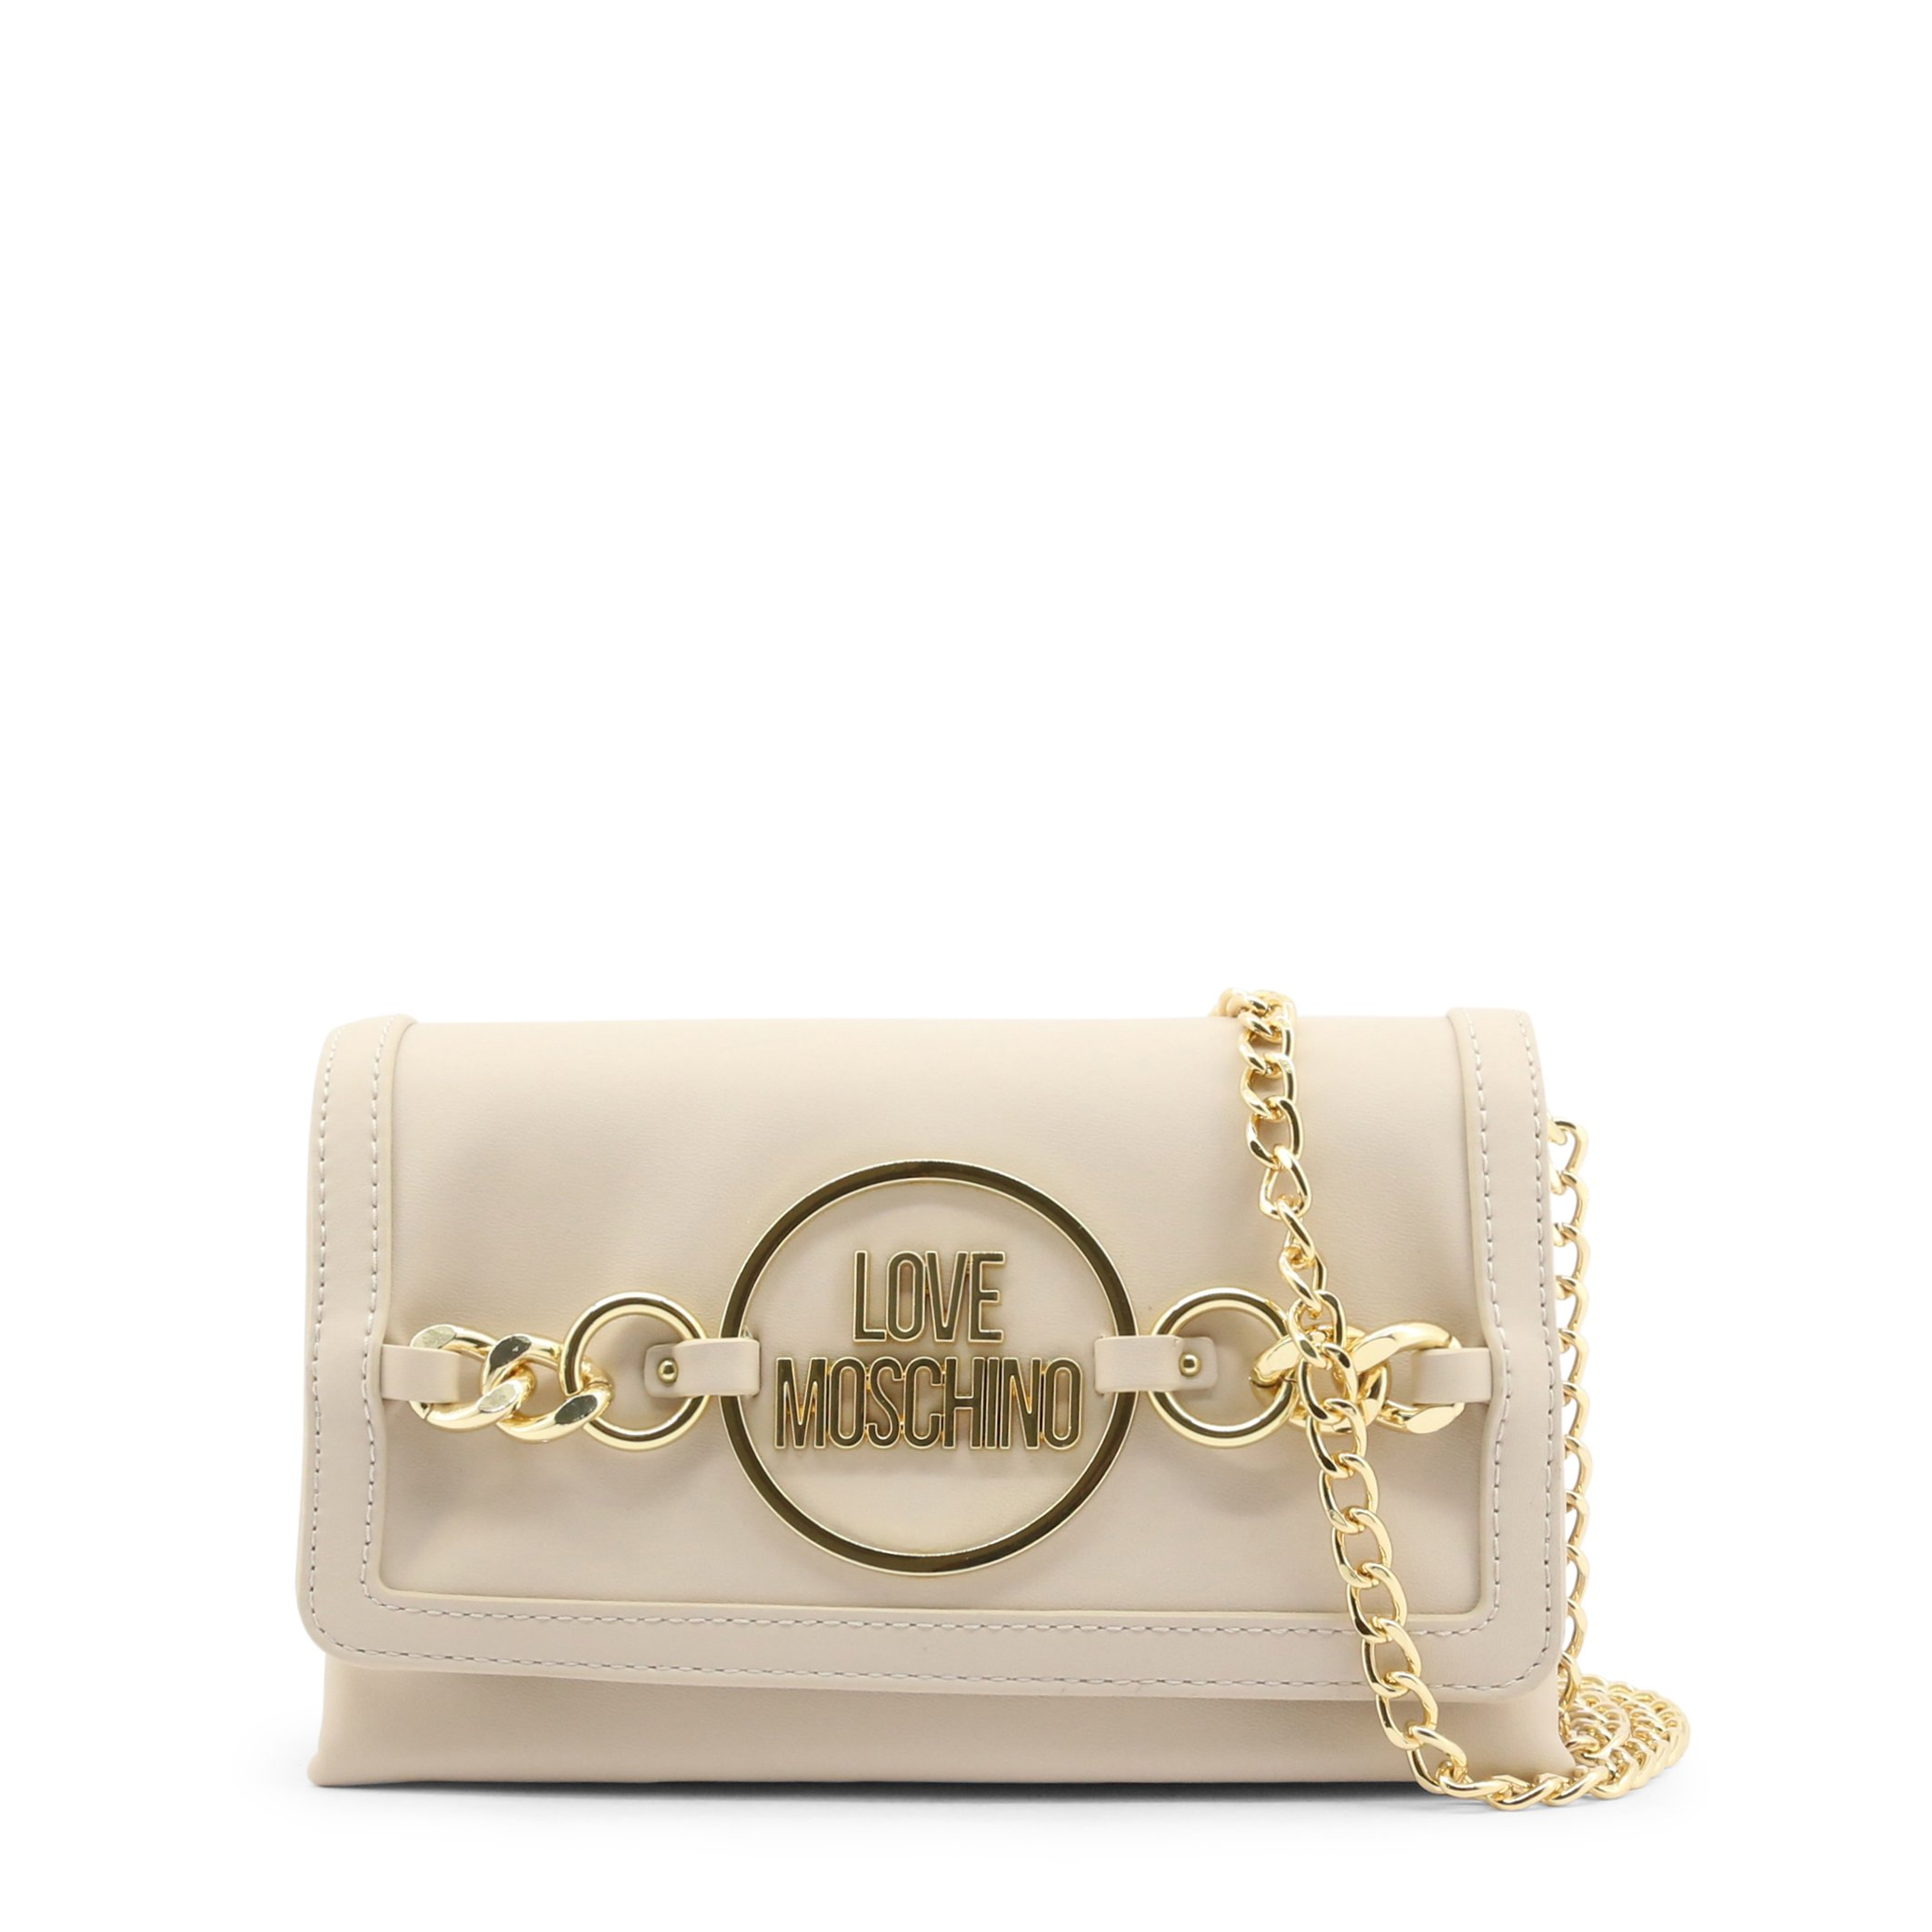 Love Moschino Women's Crossbody Bag Various Colours JC4152PP1DLE0 - white NOSIZE